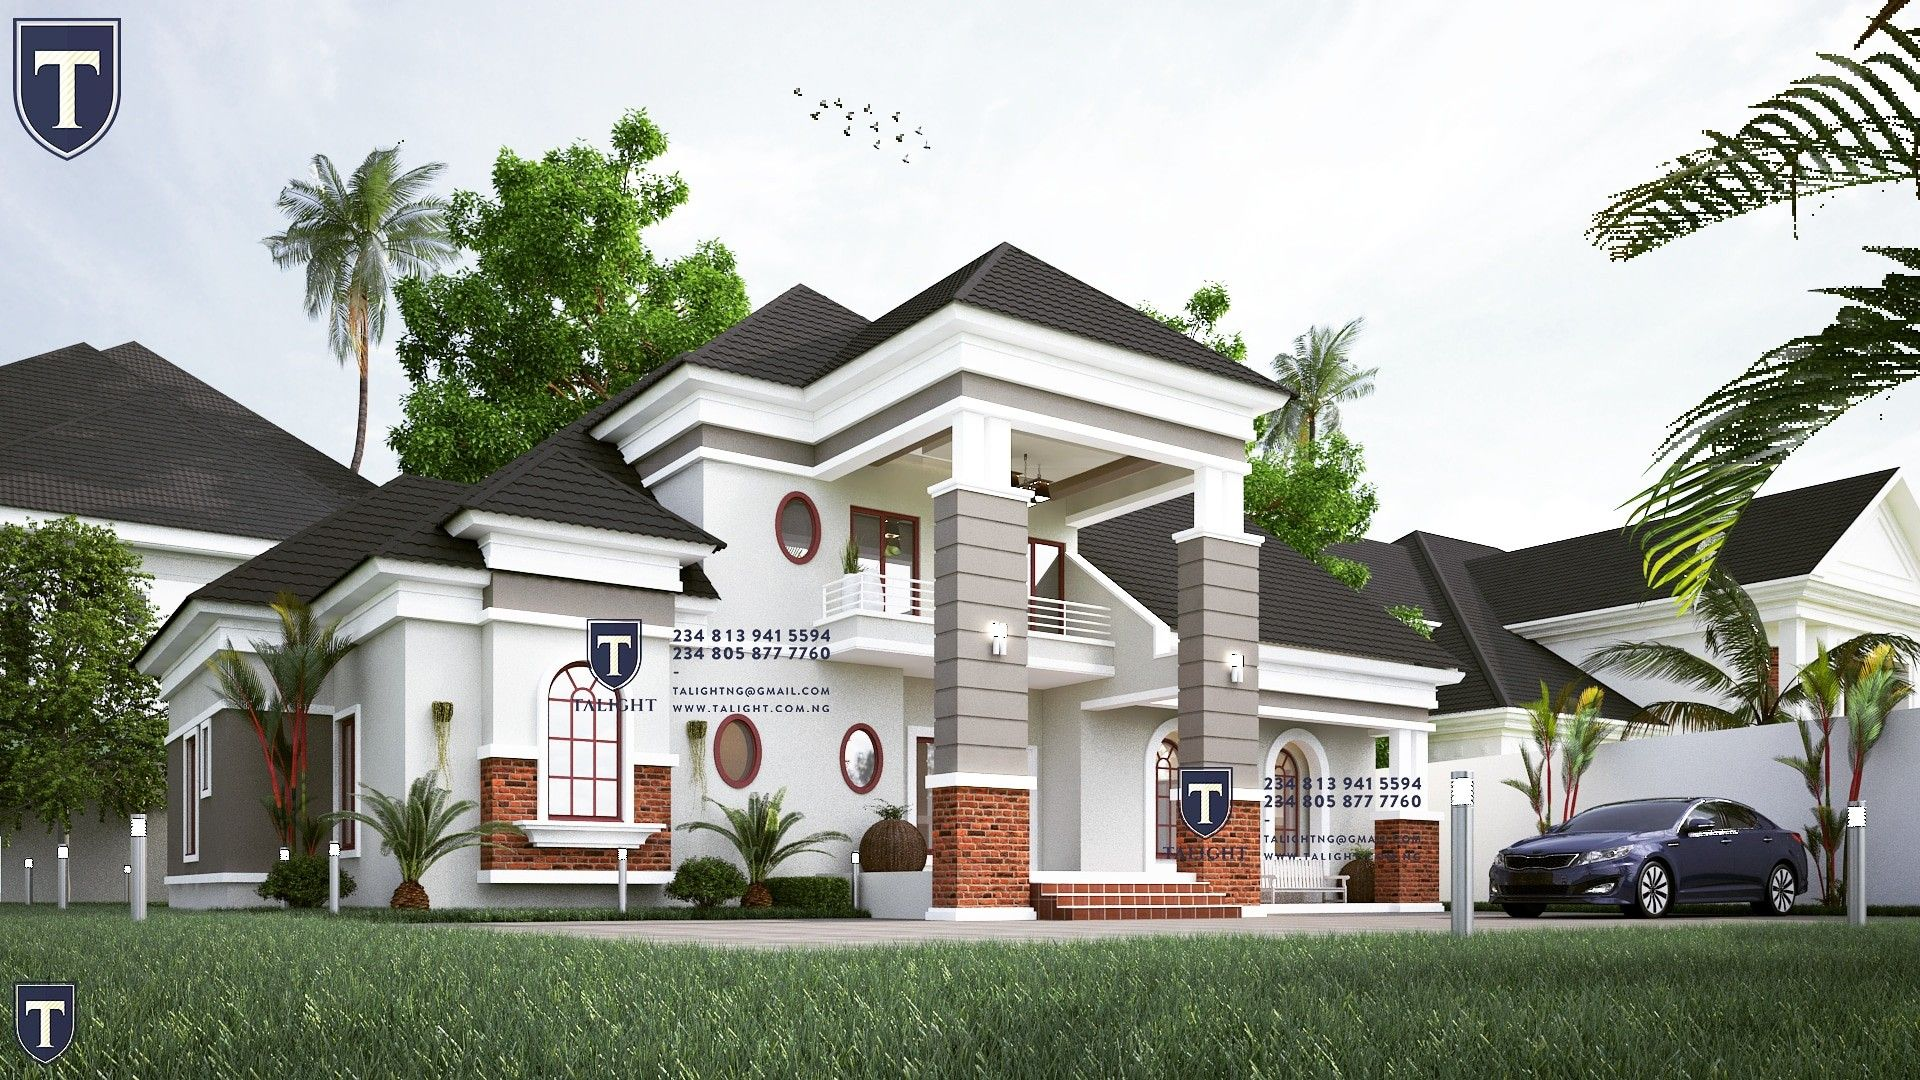 5bedroom Bungalow With Penthouse In Nigeria Contact Us On Your Next Project 2348139415594 Bungalow Design Architect Design House Bungalow House Design